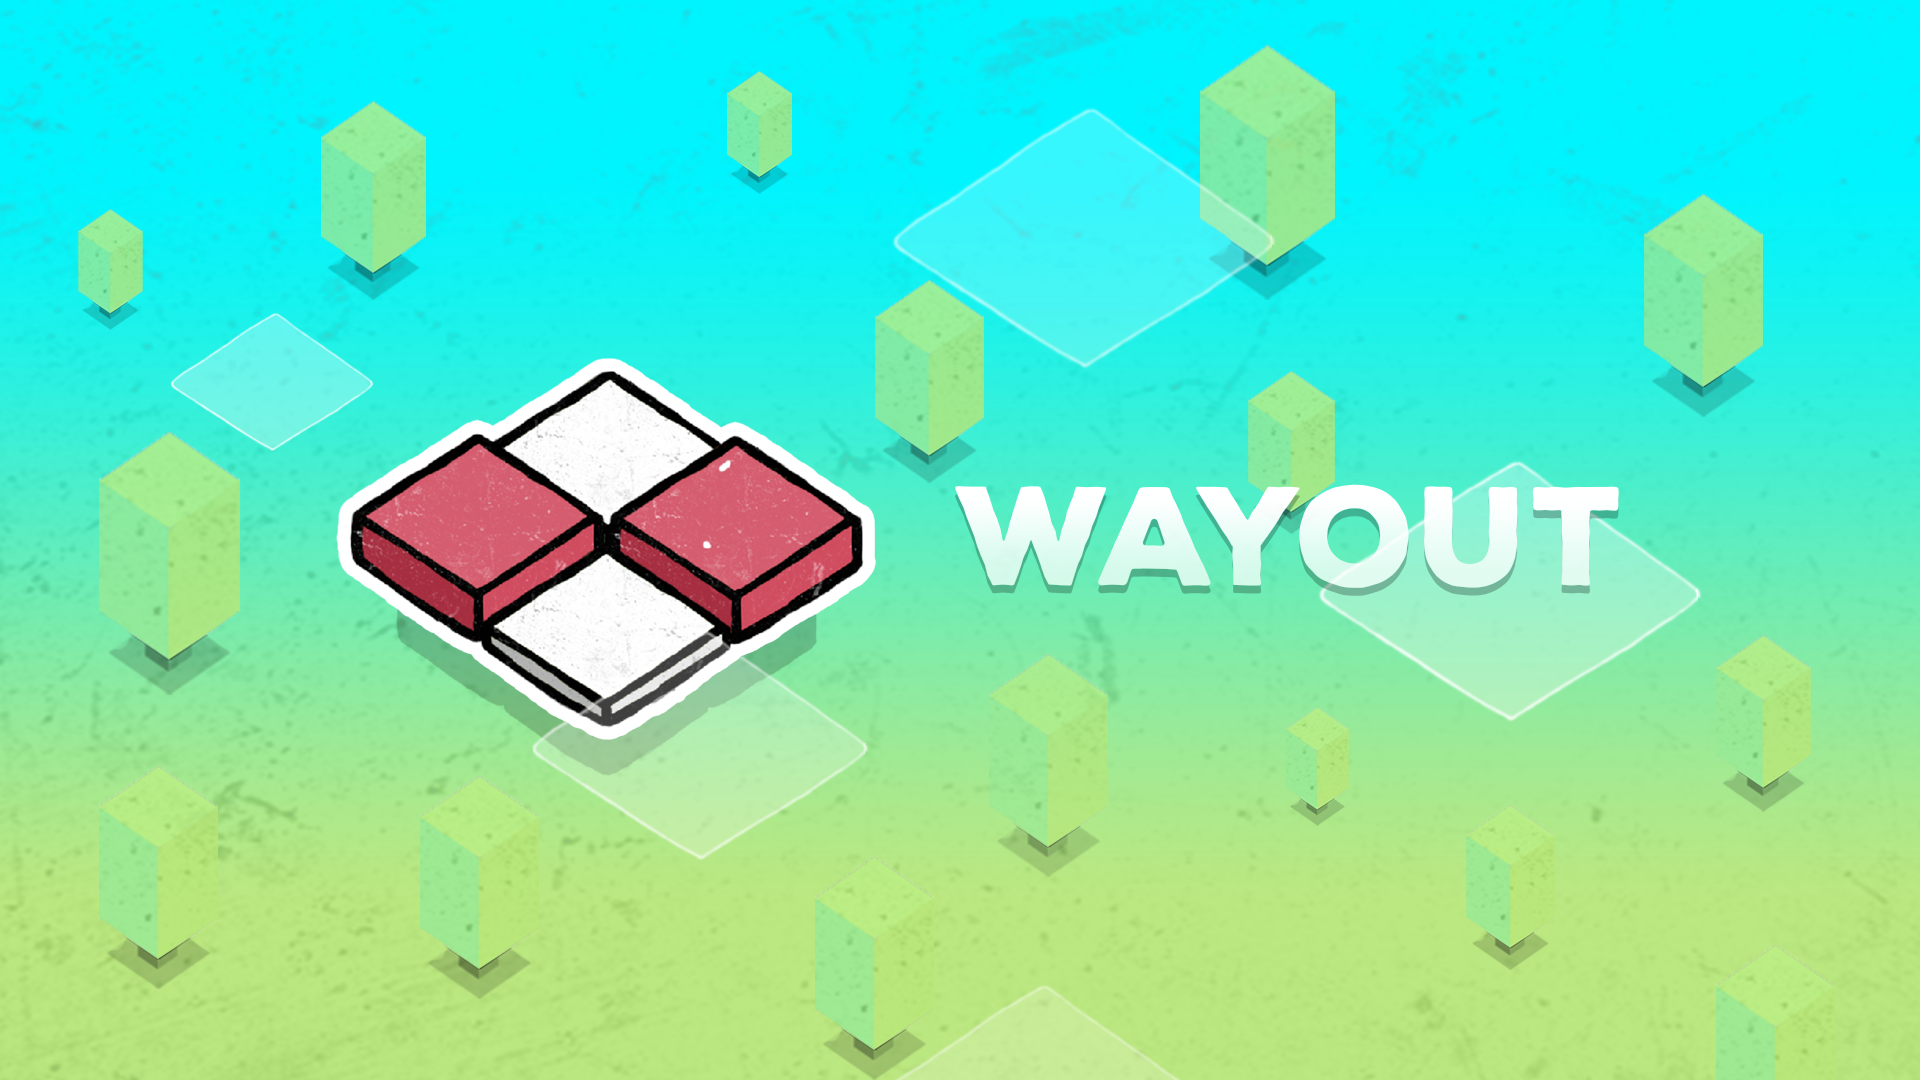 Wayout' Is the Next Colorful Minimalistic Puzzle Title From